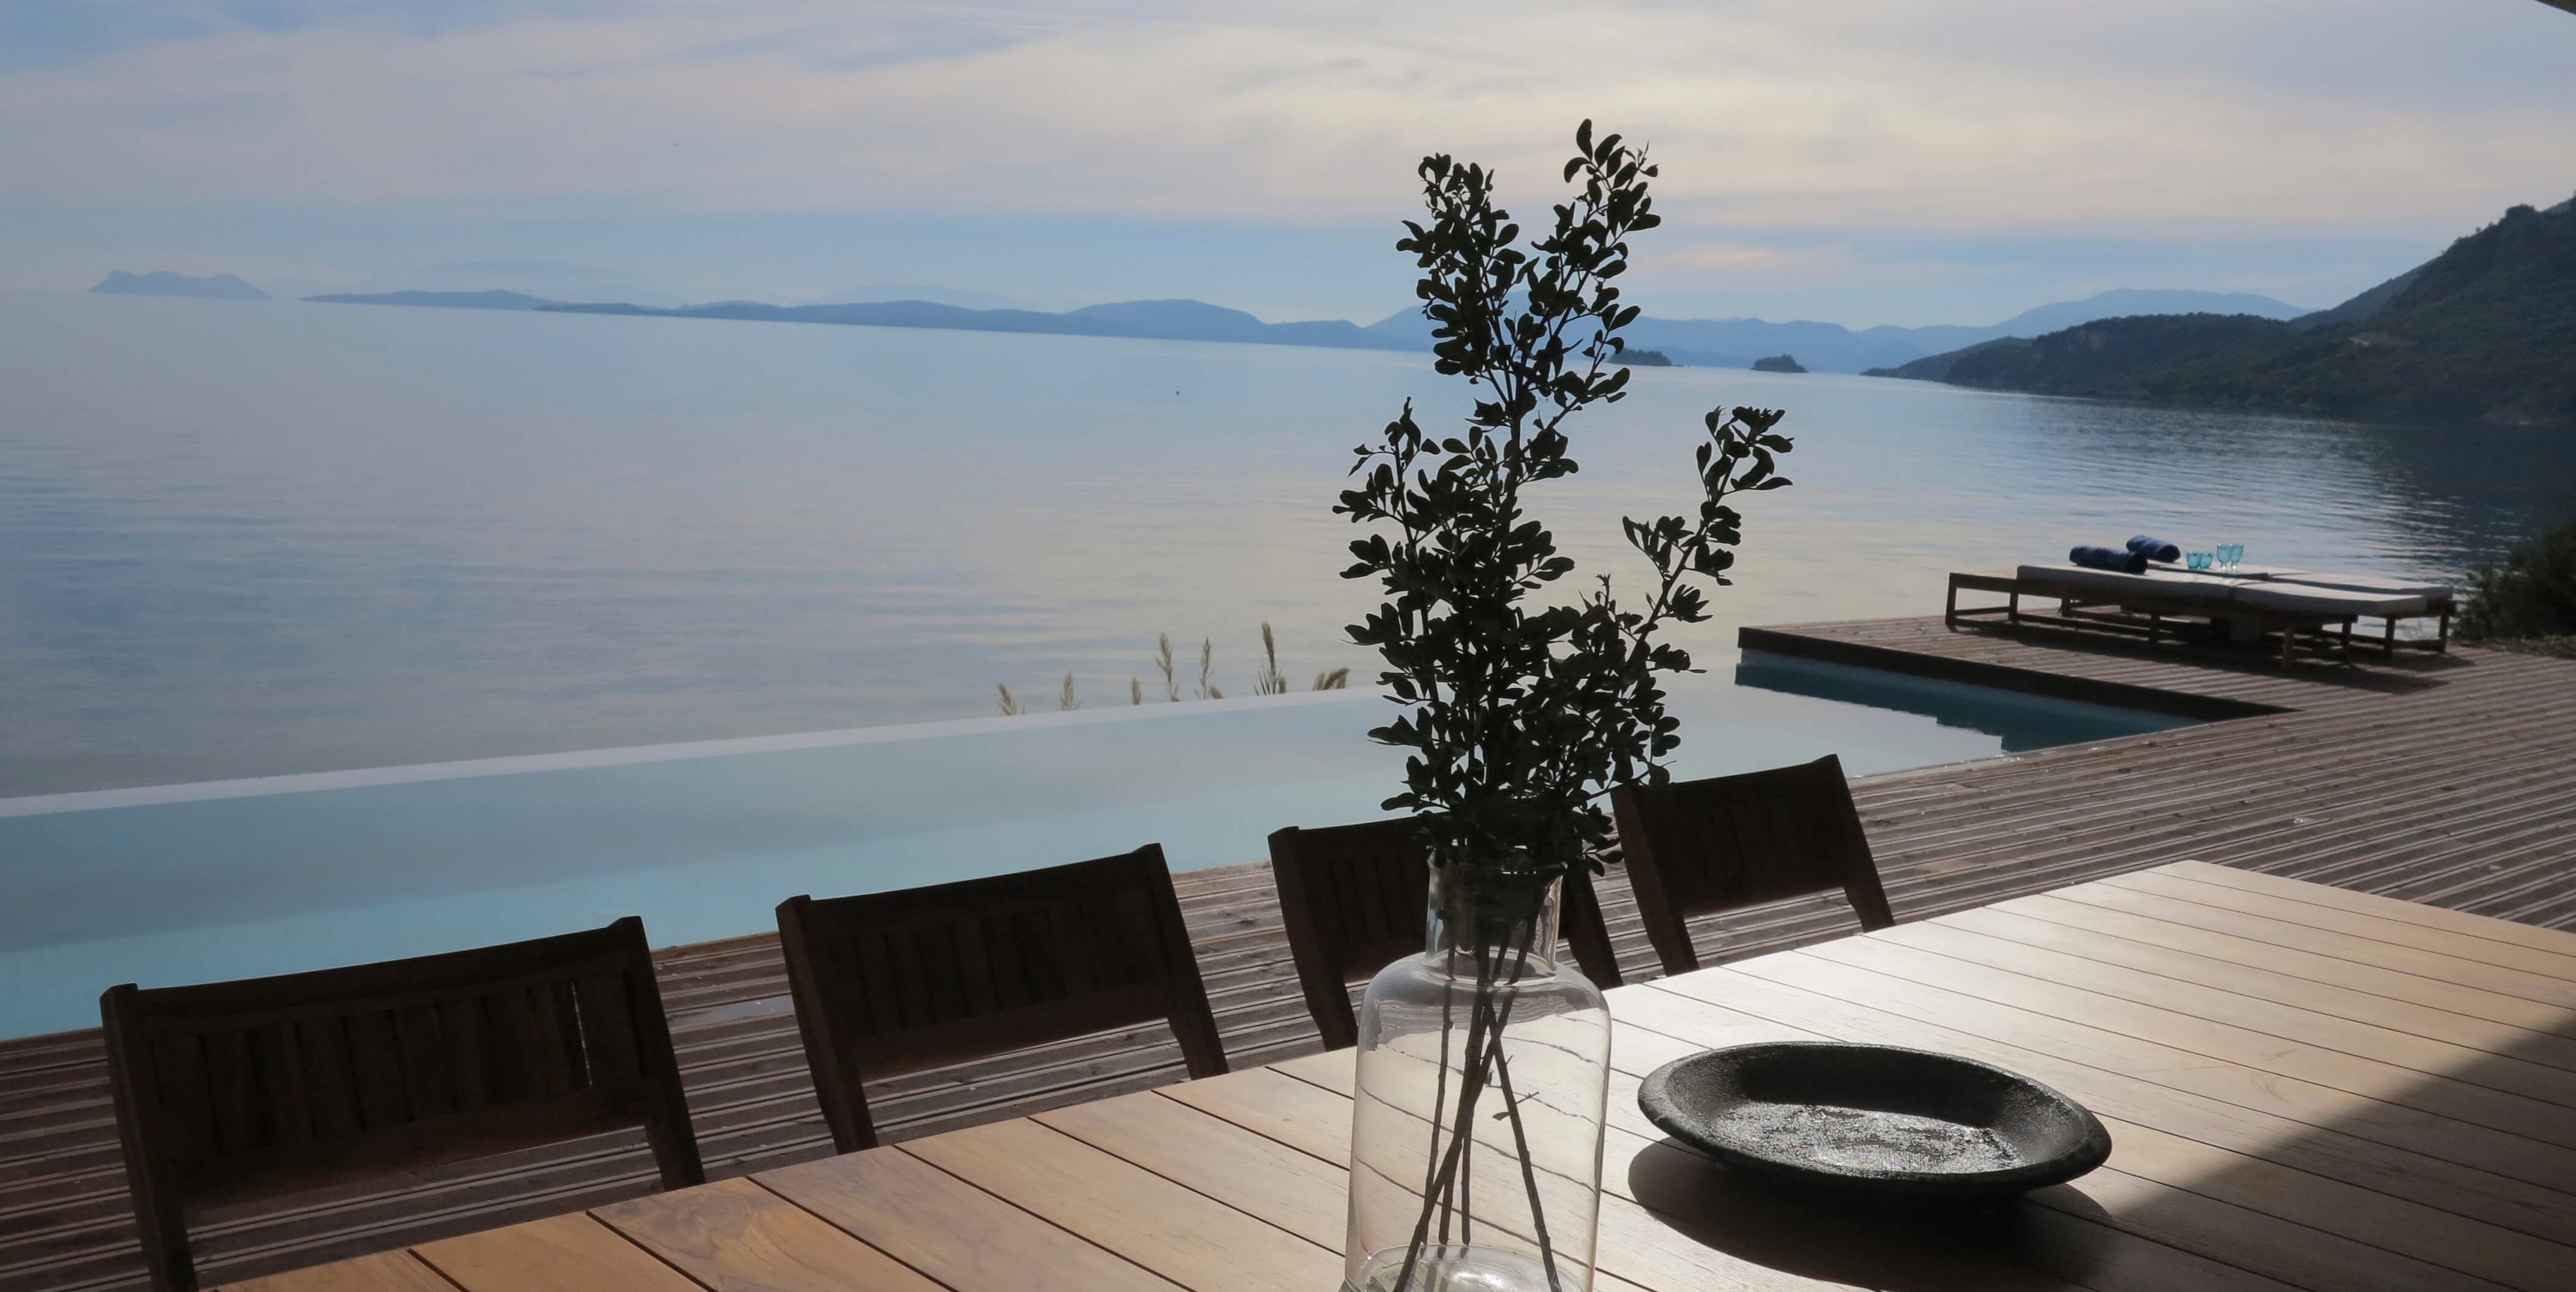 Outdoor dining and Ionian sea view